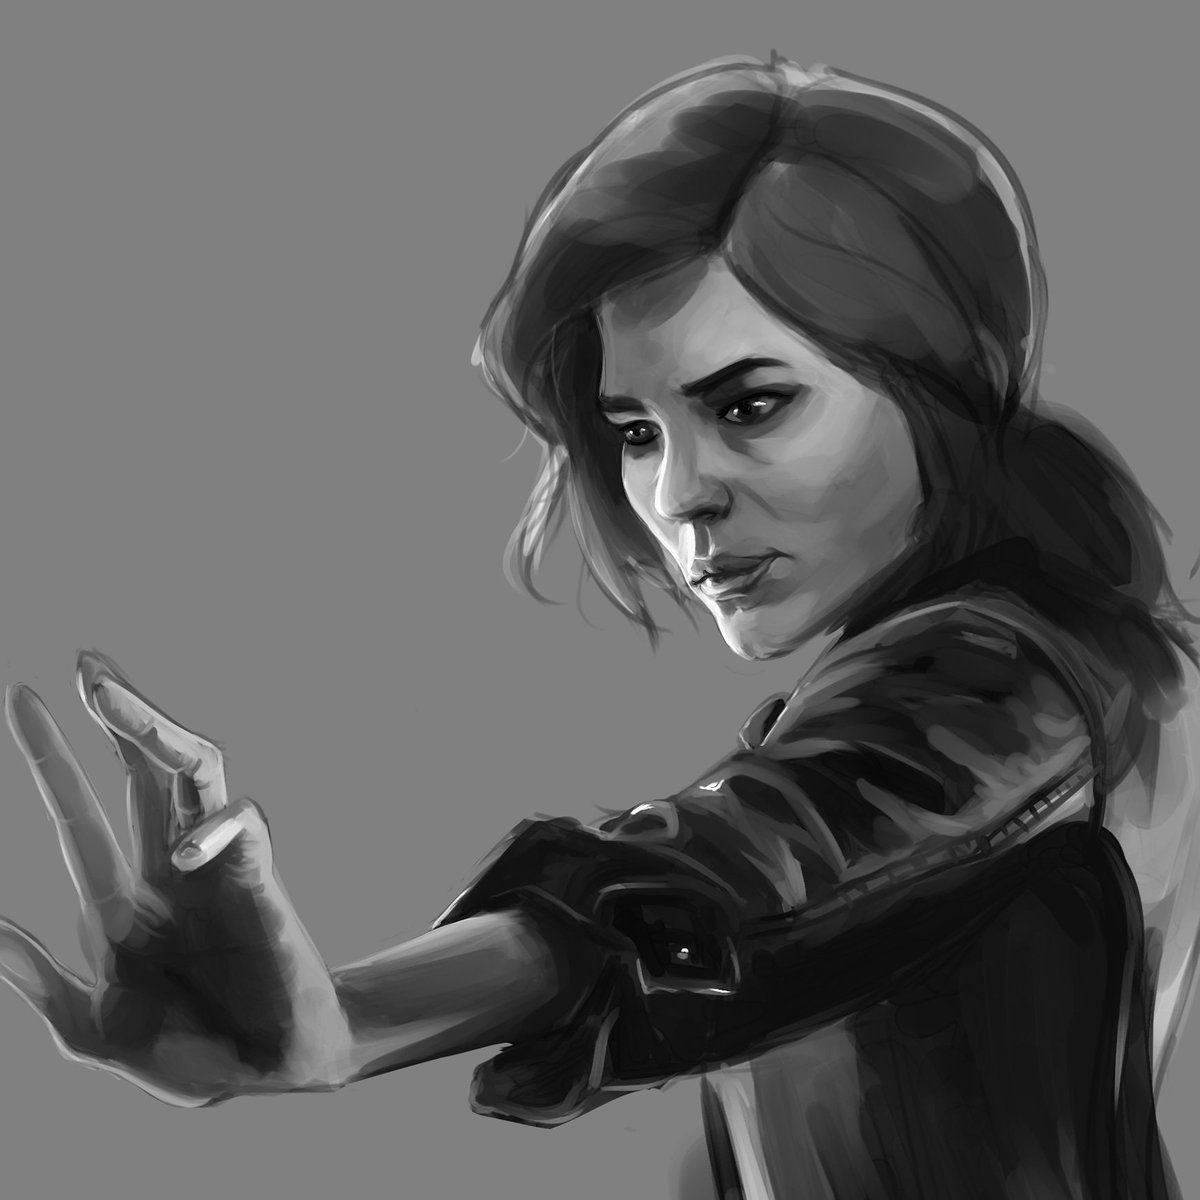 Stunning piece of Control fan art, by Max Rogers! 🎨 Nice one, @MaxRogersArt... #FanArtFriday #ControlRemedy #505Games